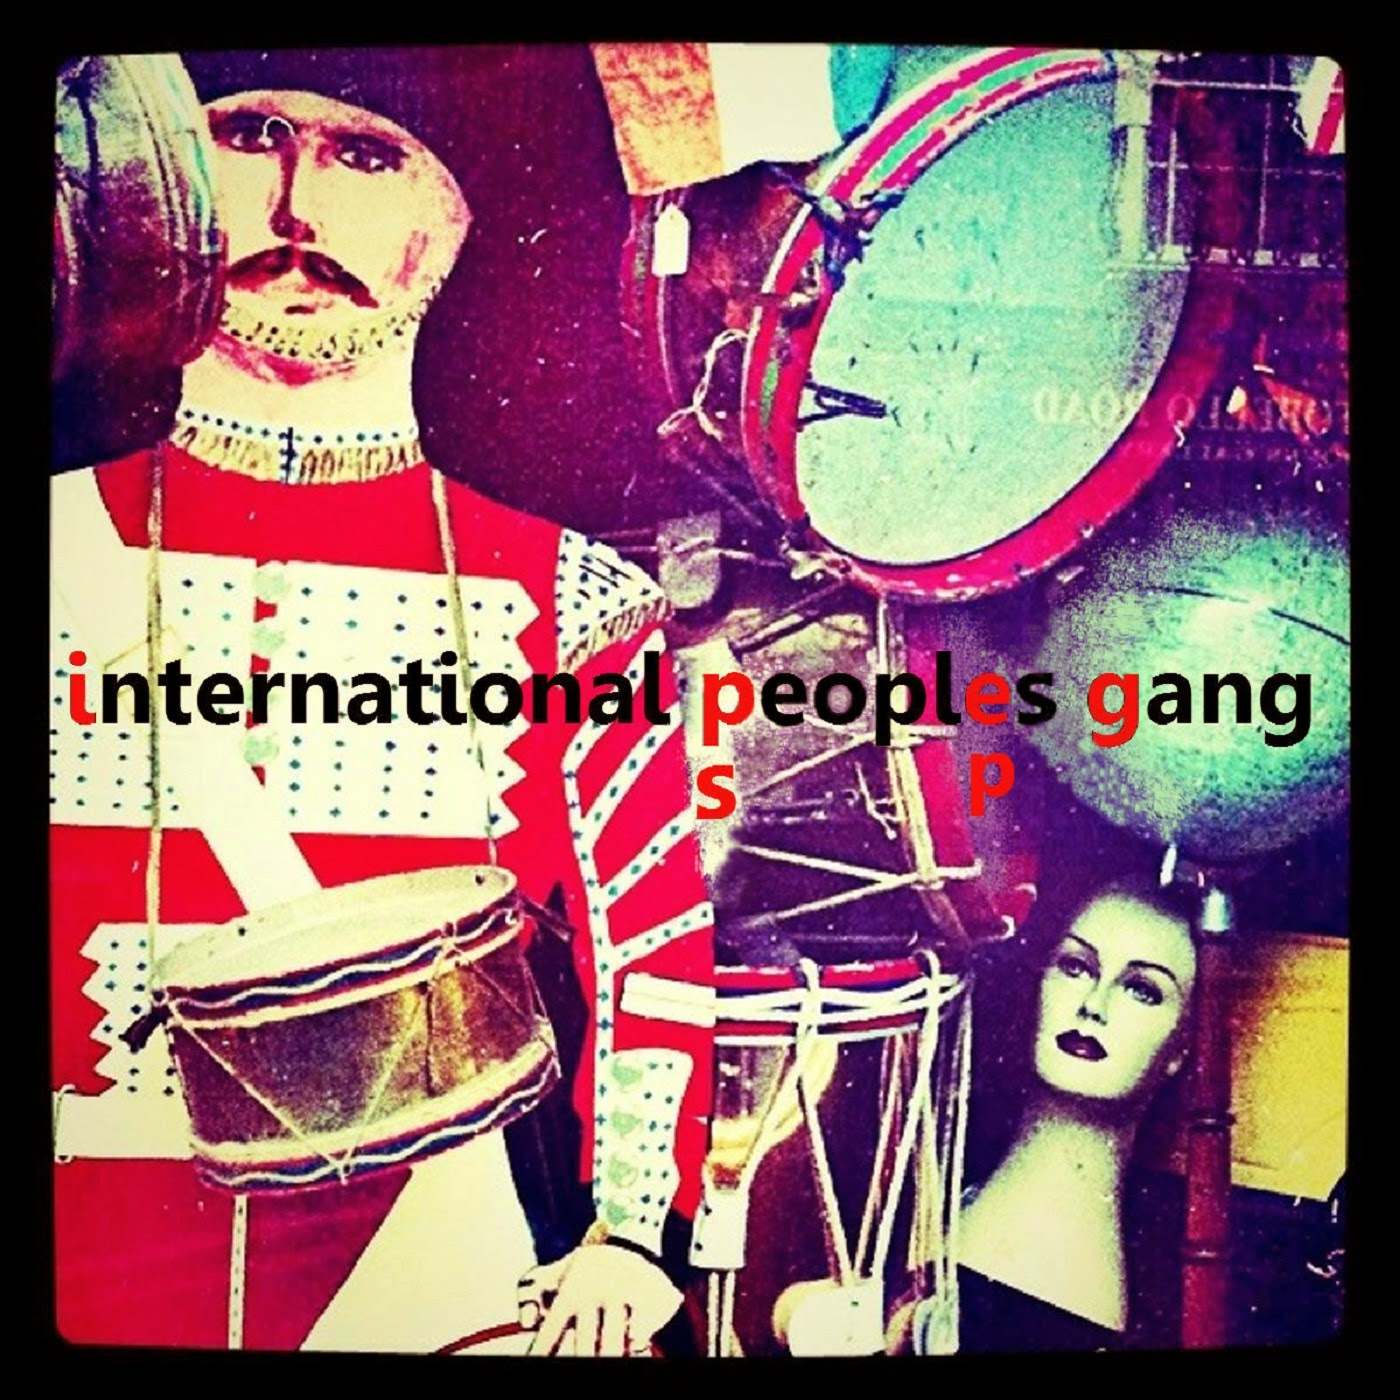 discosafari - INTERNATIONAL PEOPLES GANG - Ps